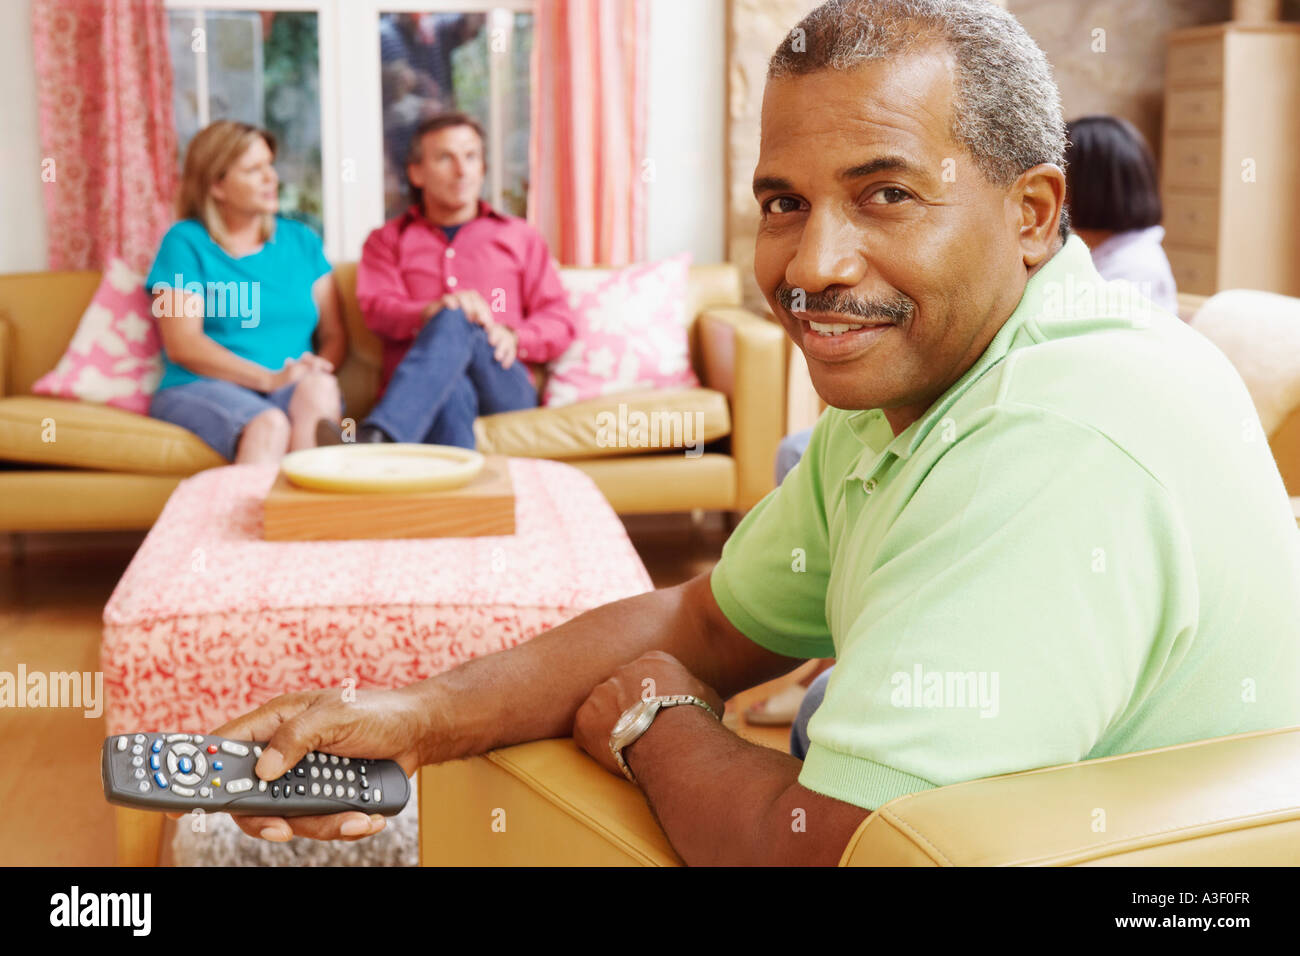 Portrait of a mature man operating a remote control with three mature people sitting beside him - Stock Image